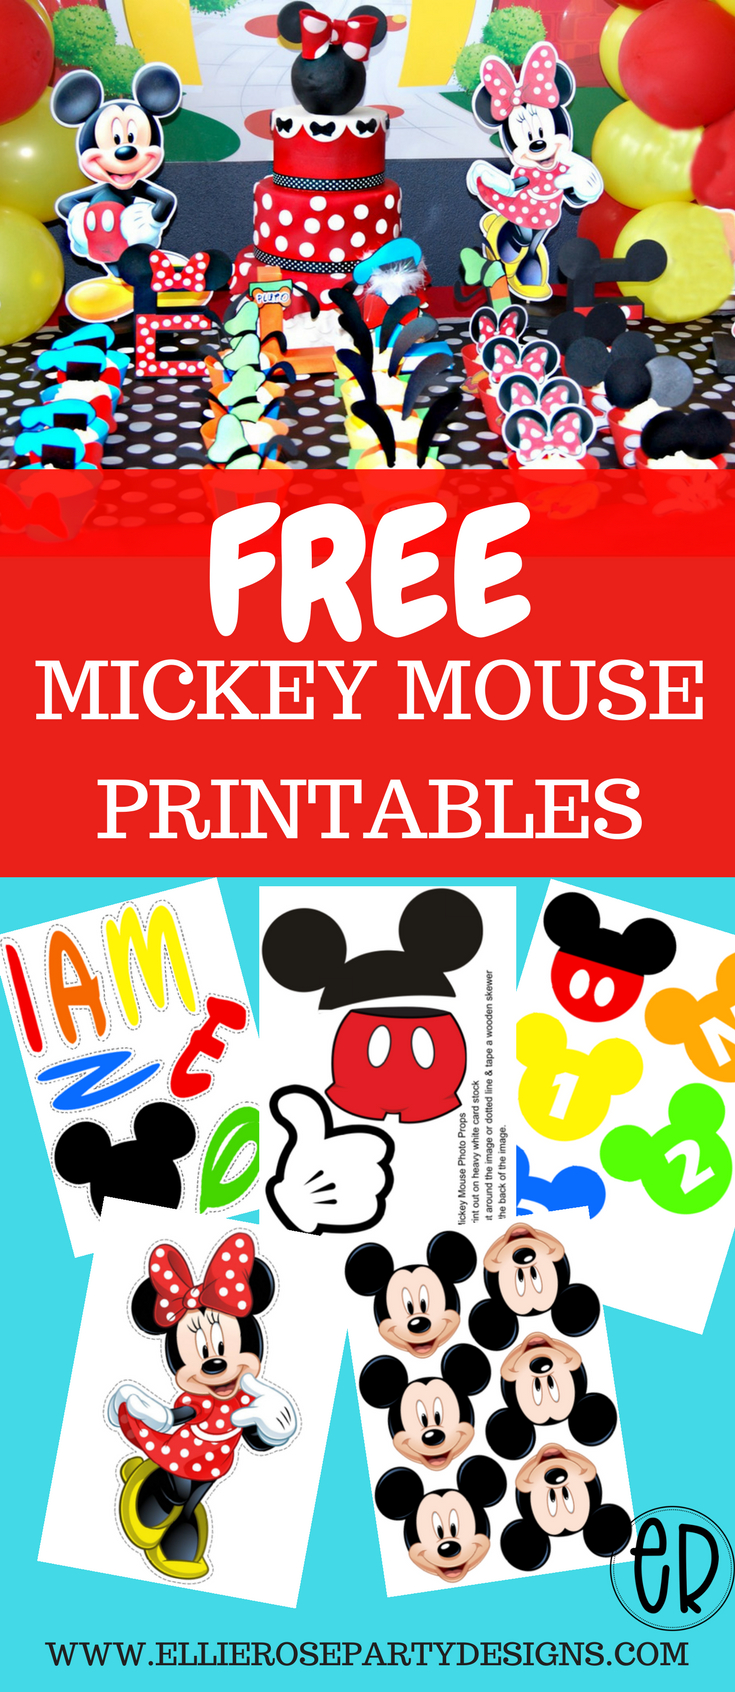 Free Mickey Mouse Printables And Party Ideas. Diy Decorations For - Free Printable Mickey Mouse Decorations